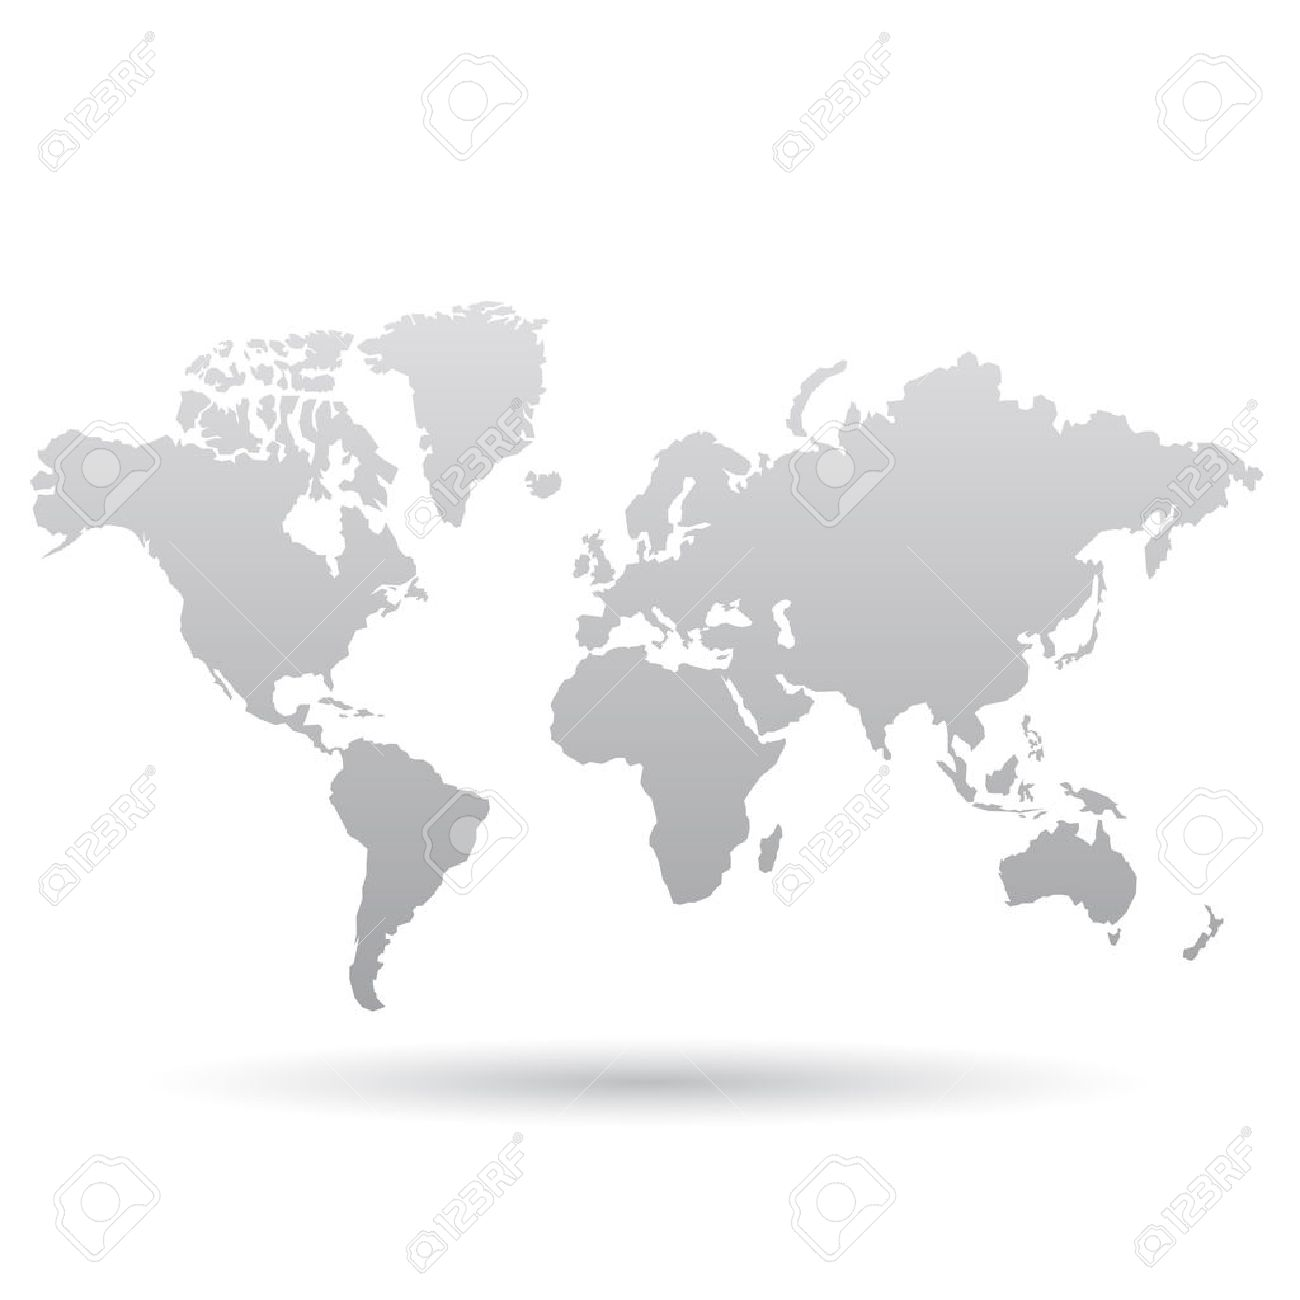 Illustration of gray world map isolated on a white background illustration of gray world map isolated on a white background stock vector 23637803 gumiabroncs Gallery